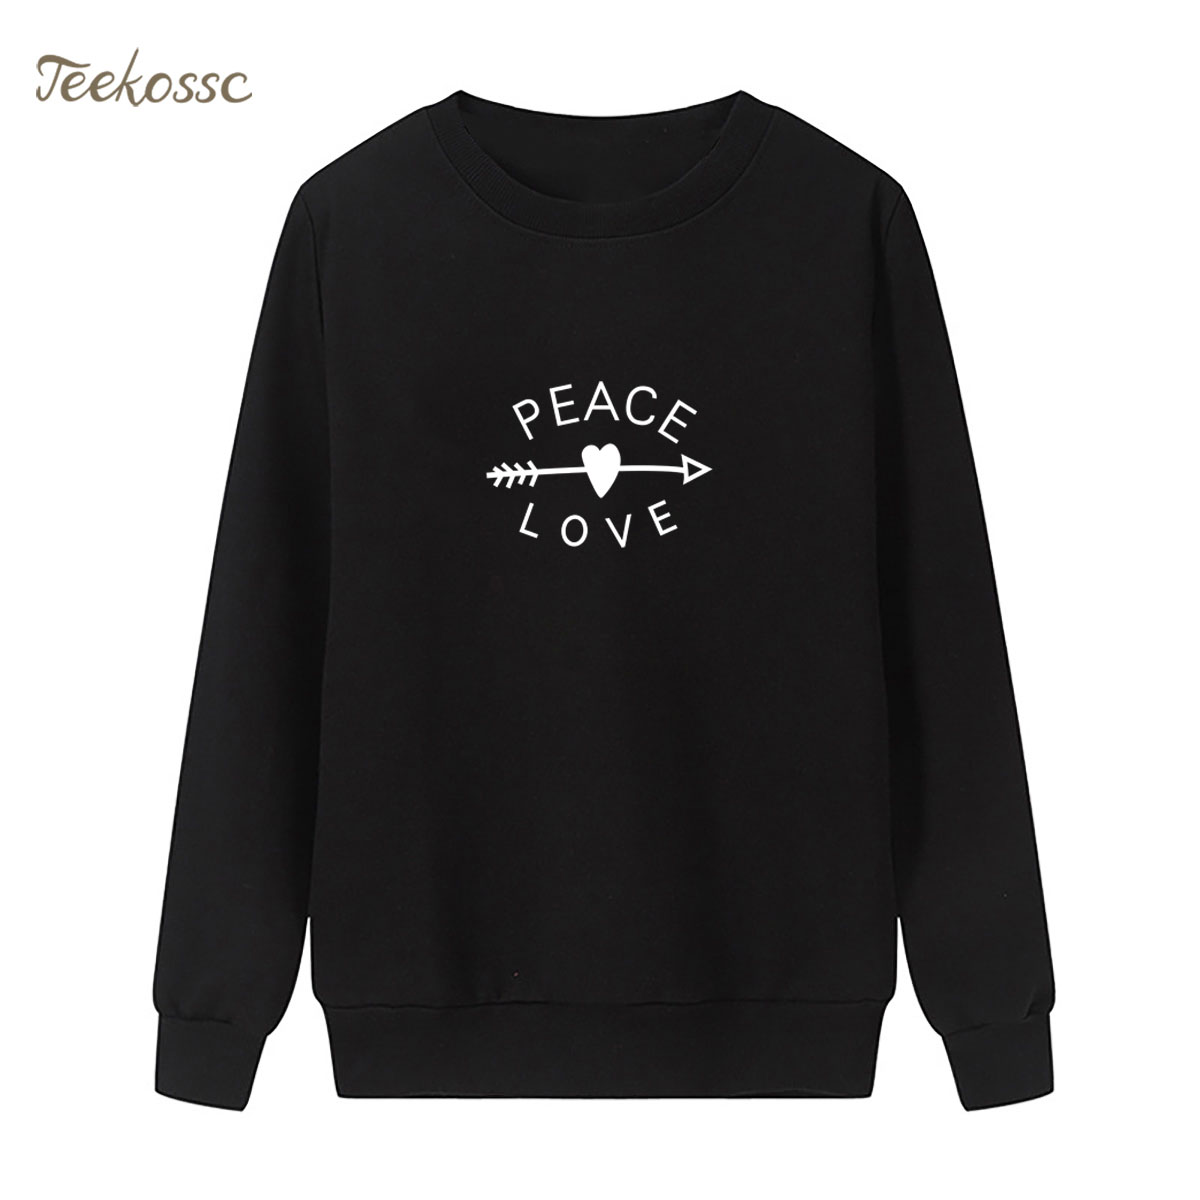 Arrow Heart Long Sleeve Sweatshirt  PEACE & LOVE Print Hoodie 2018 Winter Autumn Women Lasdies Pullover Loose Fleece Streetwear